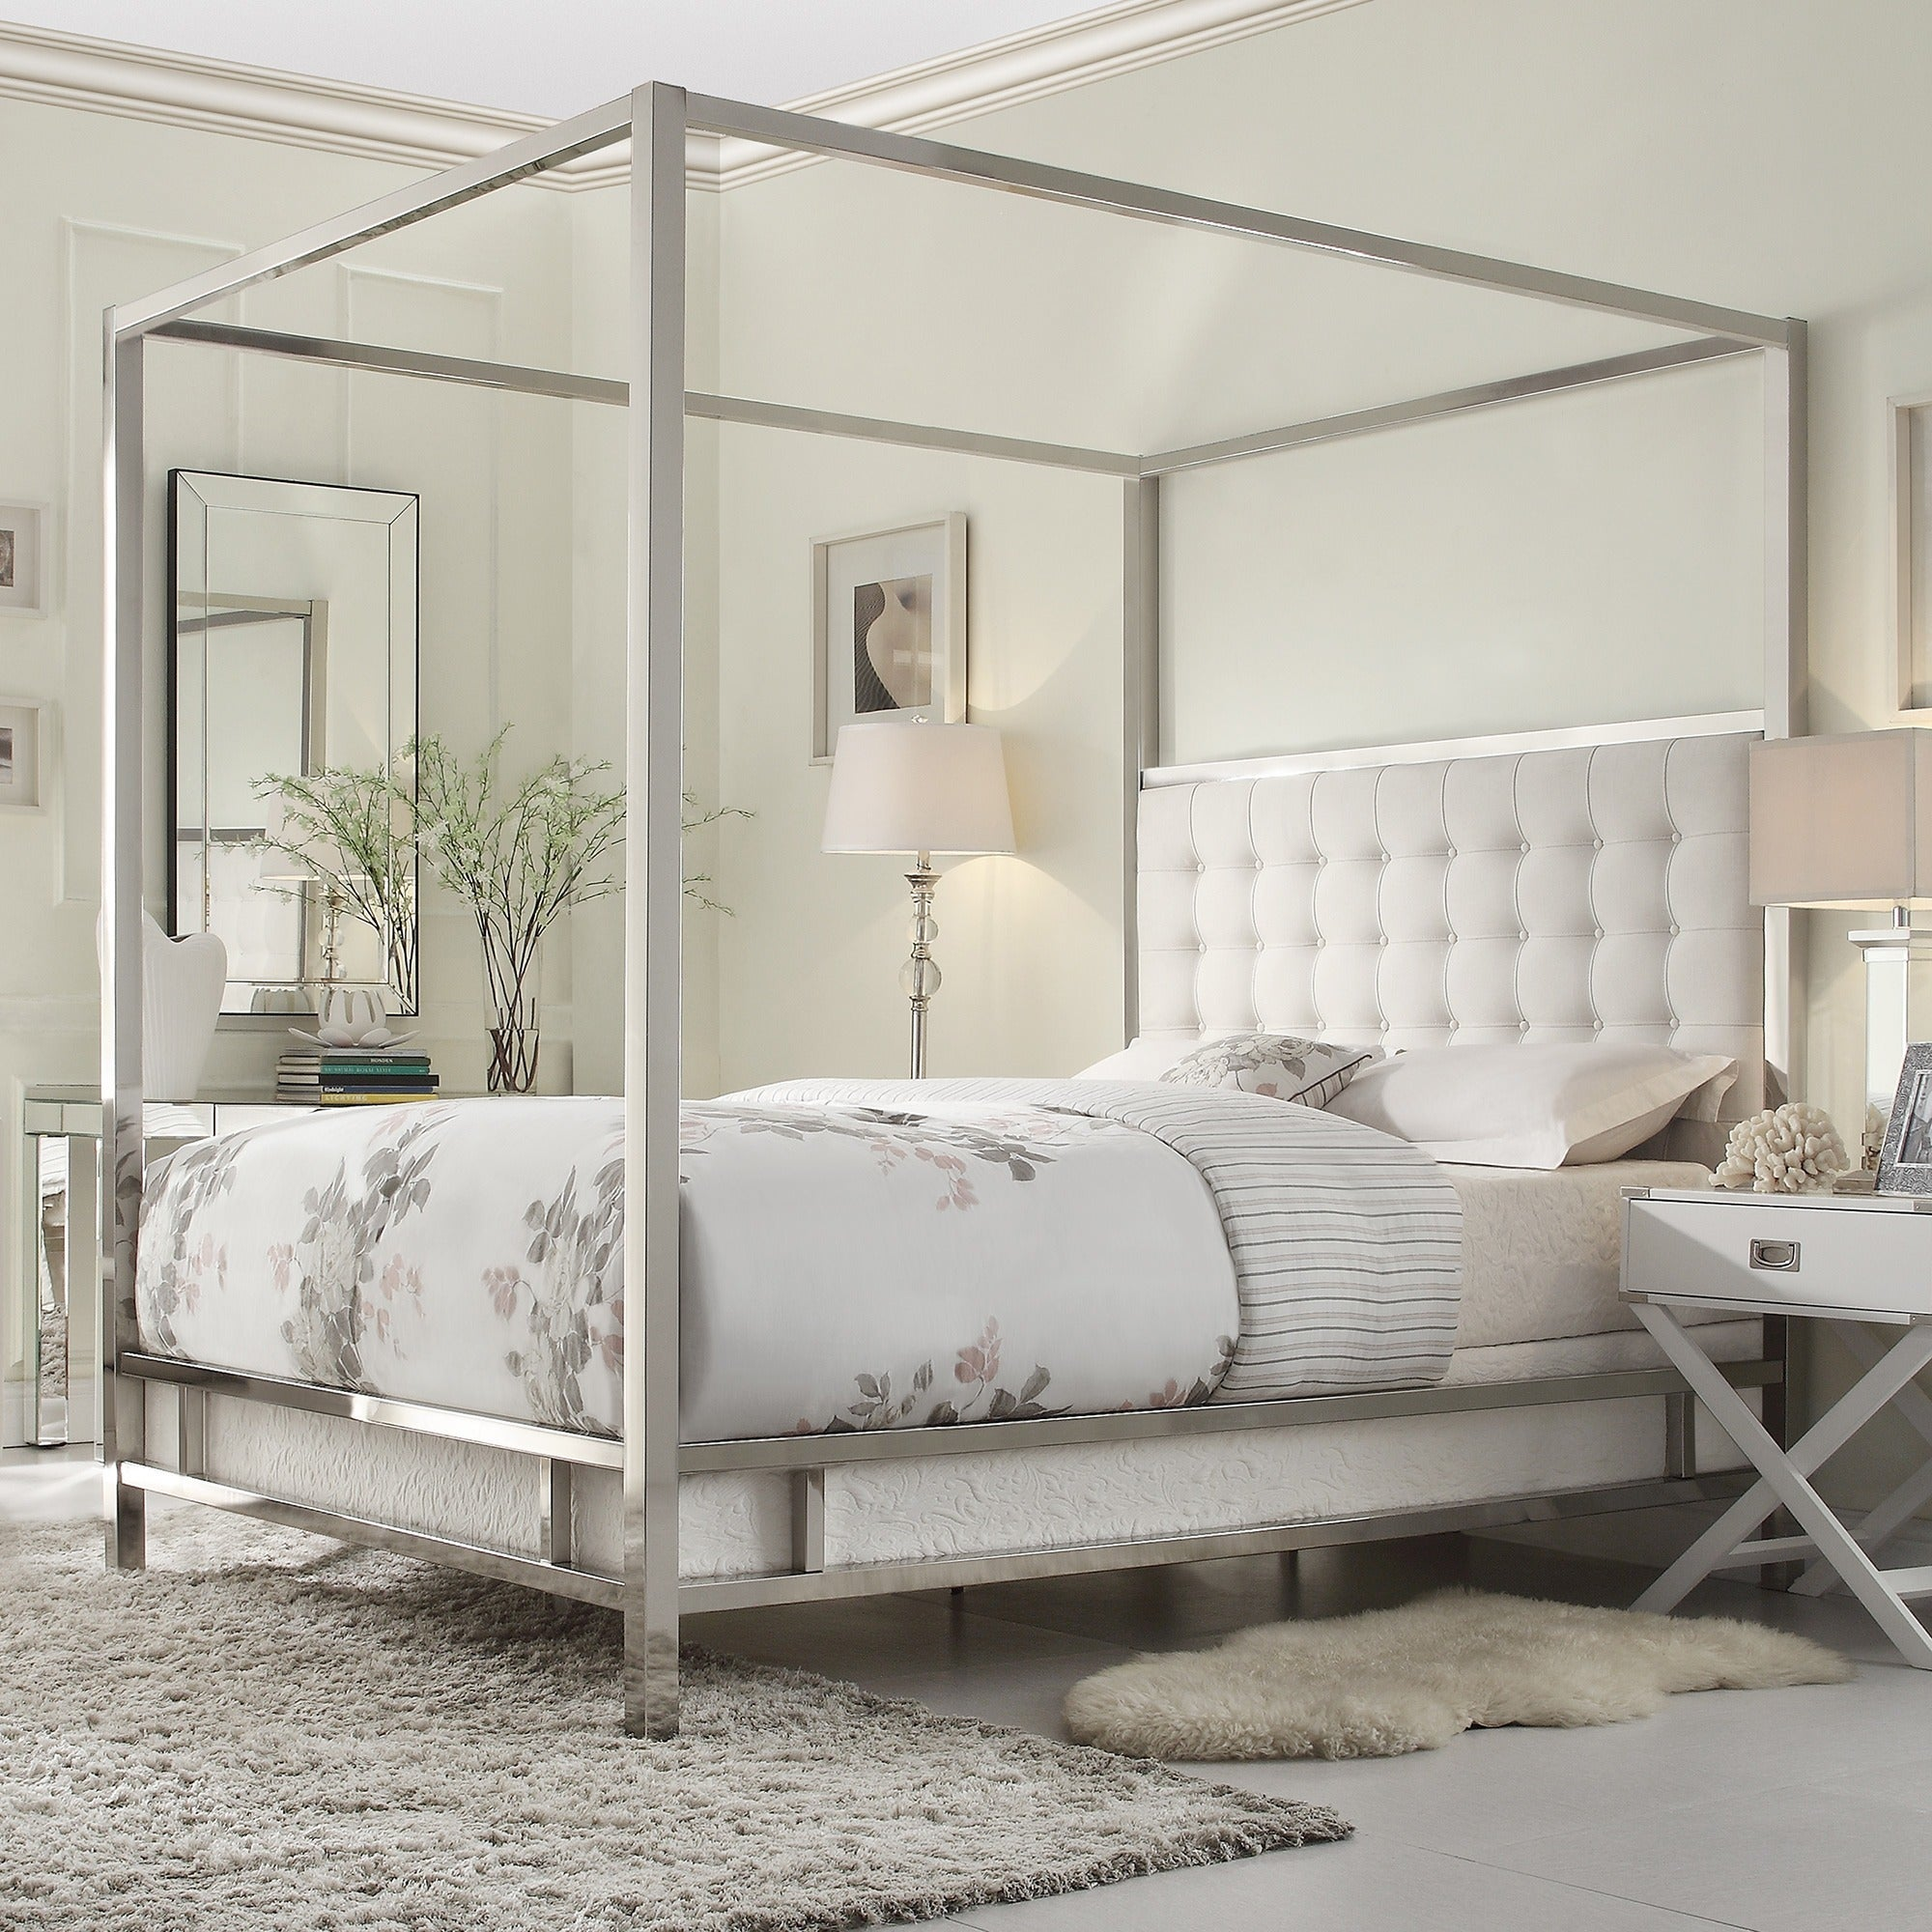 Queen Mirrored Canopy Bed